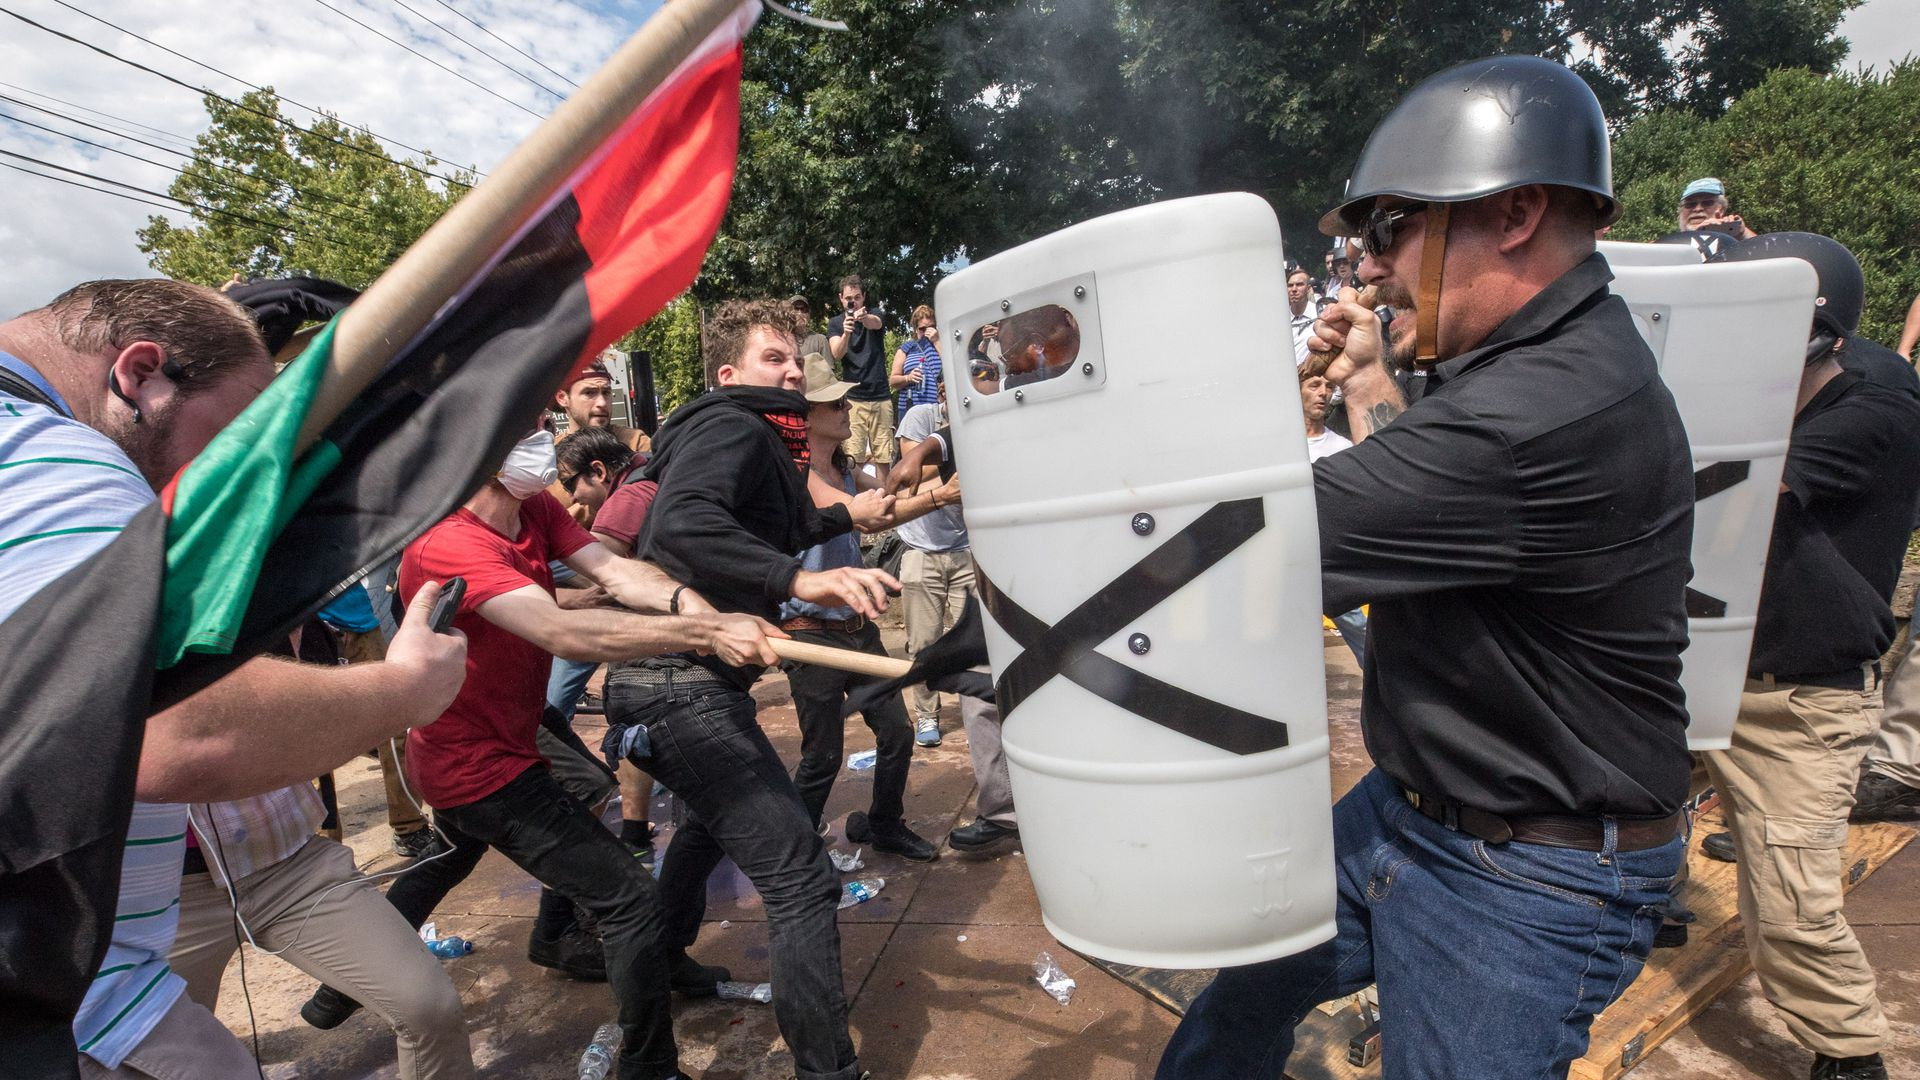 Fighting at Charlottesville rally